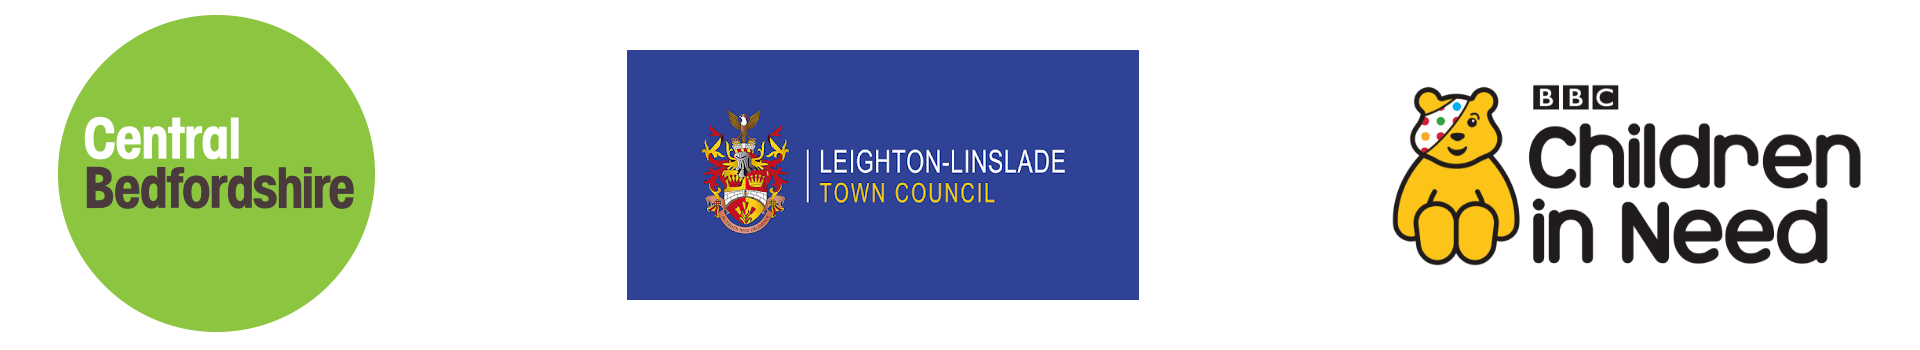 Central Bedfordshire Council, Leighton Linslade Town Council, Children In Need